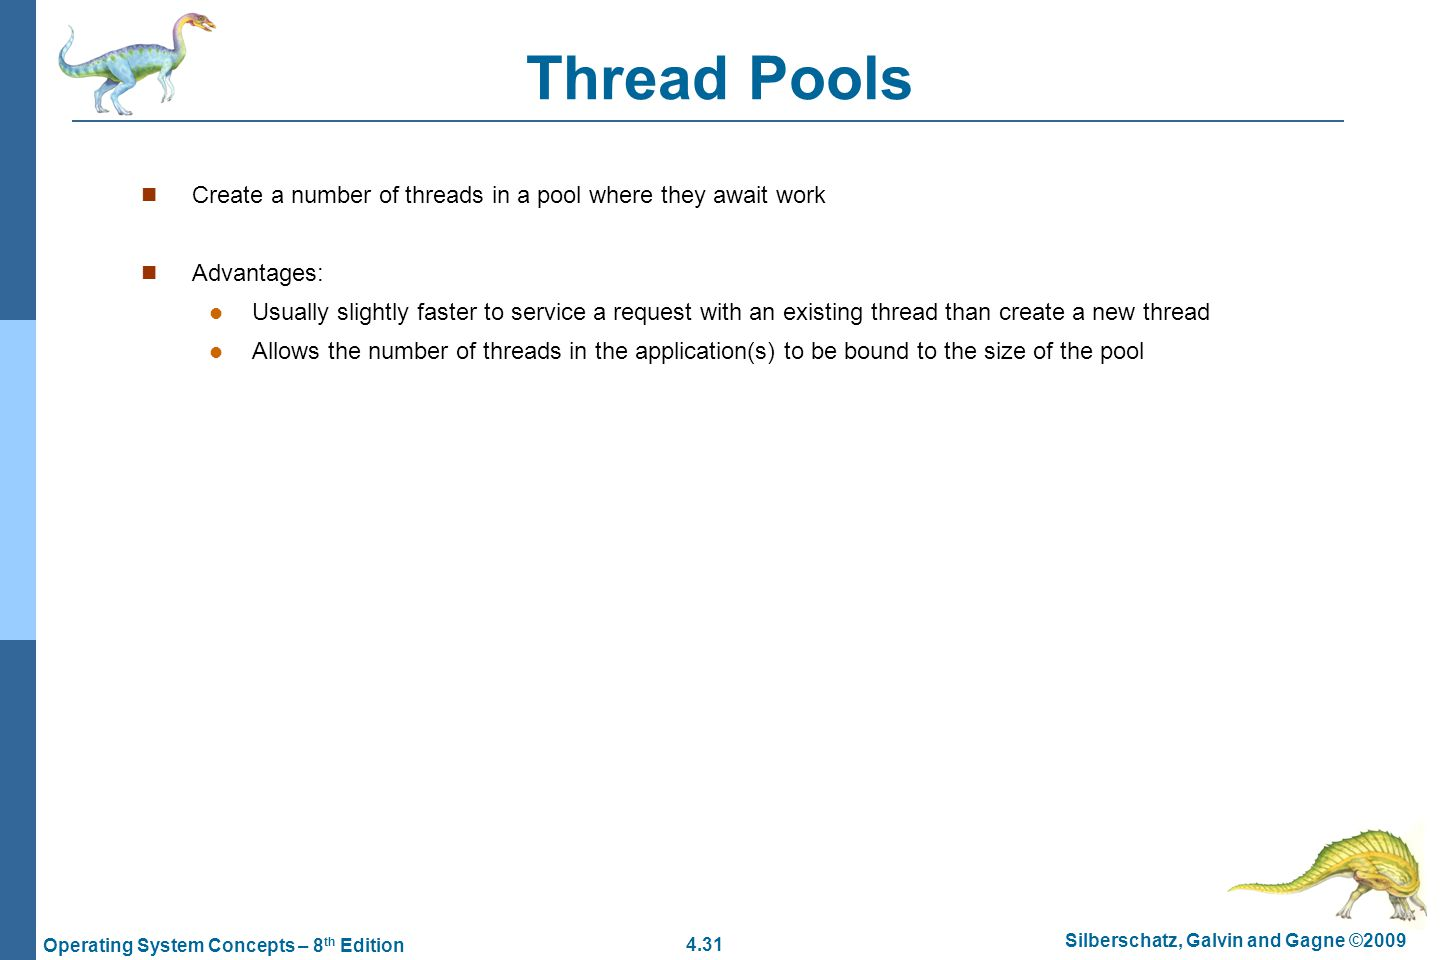 4.31 Silberschatz, Galvin and Gagne ©2009 Operating System Concepts – 8 th Edition Thread Pools Create a number of threads in a pool where they await work Advantages: Usually slightly faster to service a request with an existing thread than create a new thread Allows the number of threads in the application(s) to be bound to the size of the pool